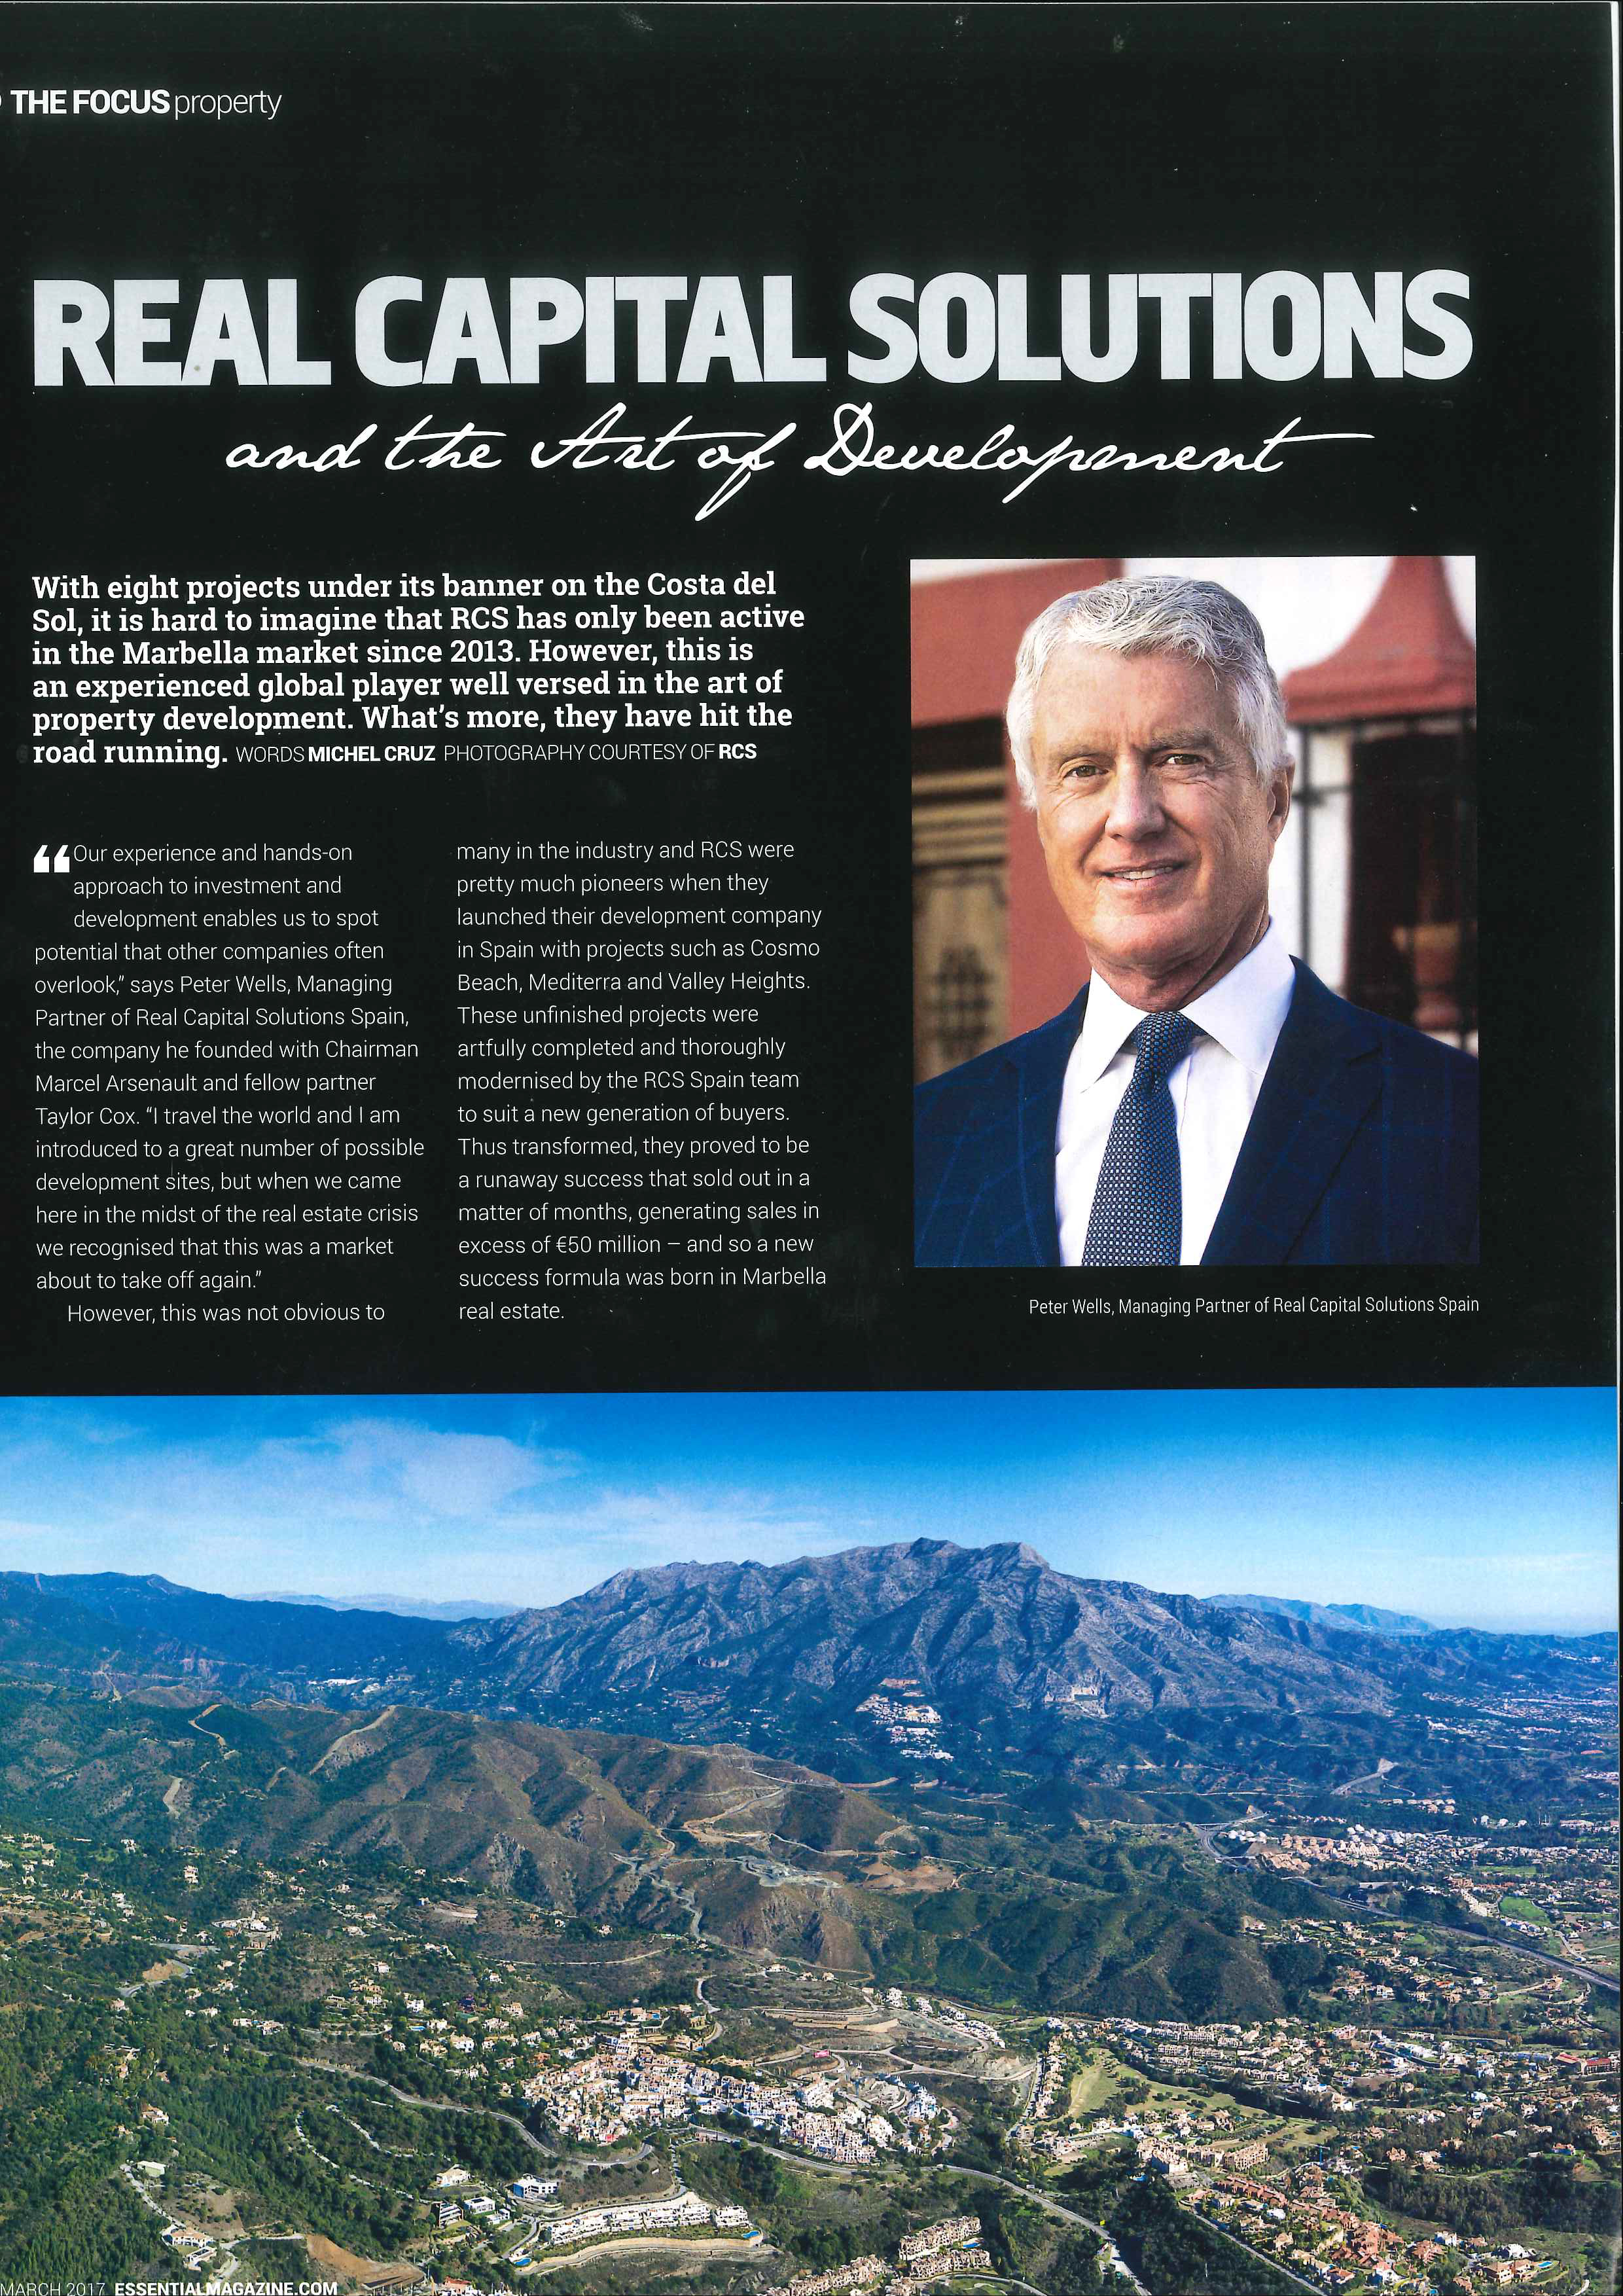 Peter Wells, Managing Partner of Real Capital Solutions Spain discusses the Art of Development